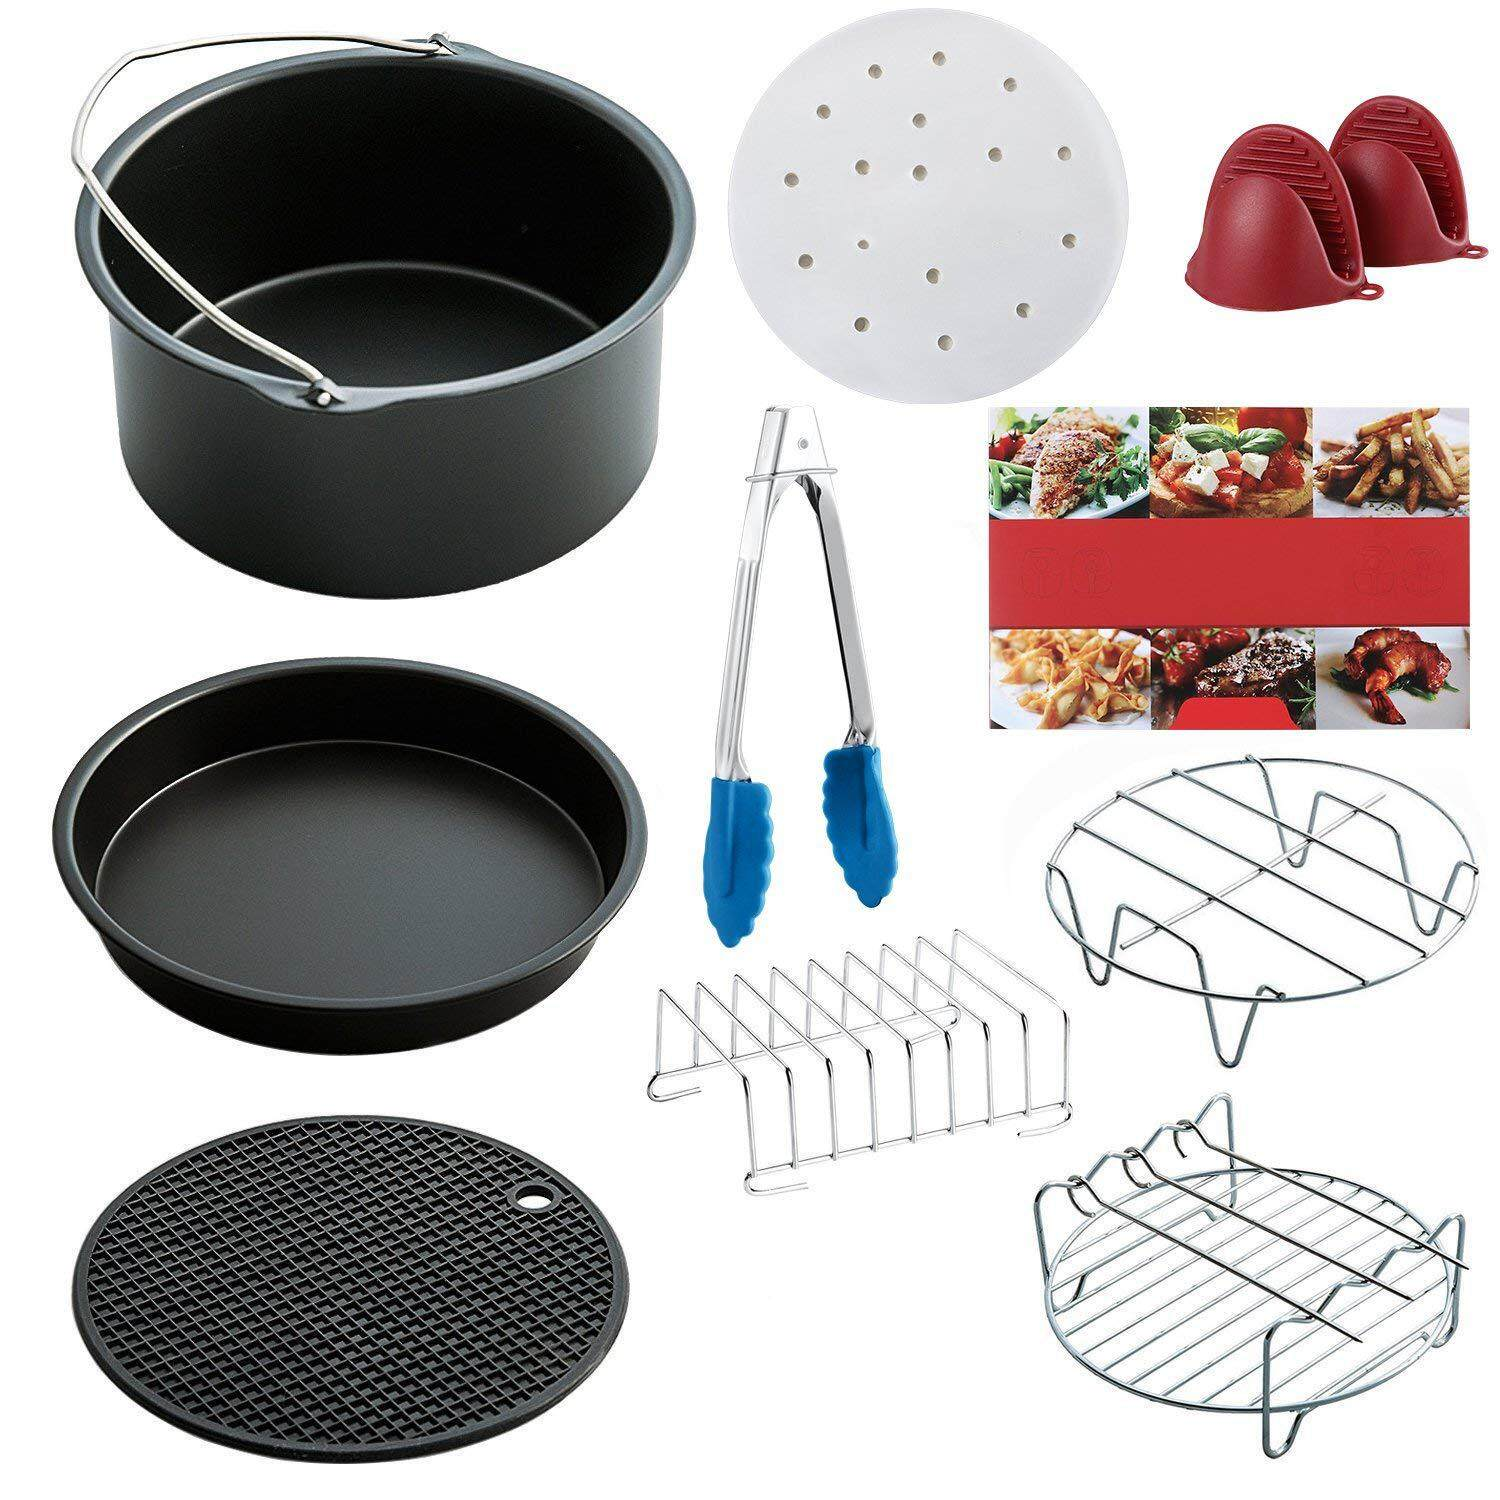 Free Shipping Air Fryer Accessories Set Of 10 Pcs, Fit All Standard Air Fryer 3.7qt- 5.3qt- 5.8qt, 7 Inch By Ralleya.